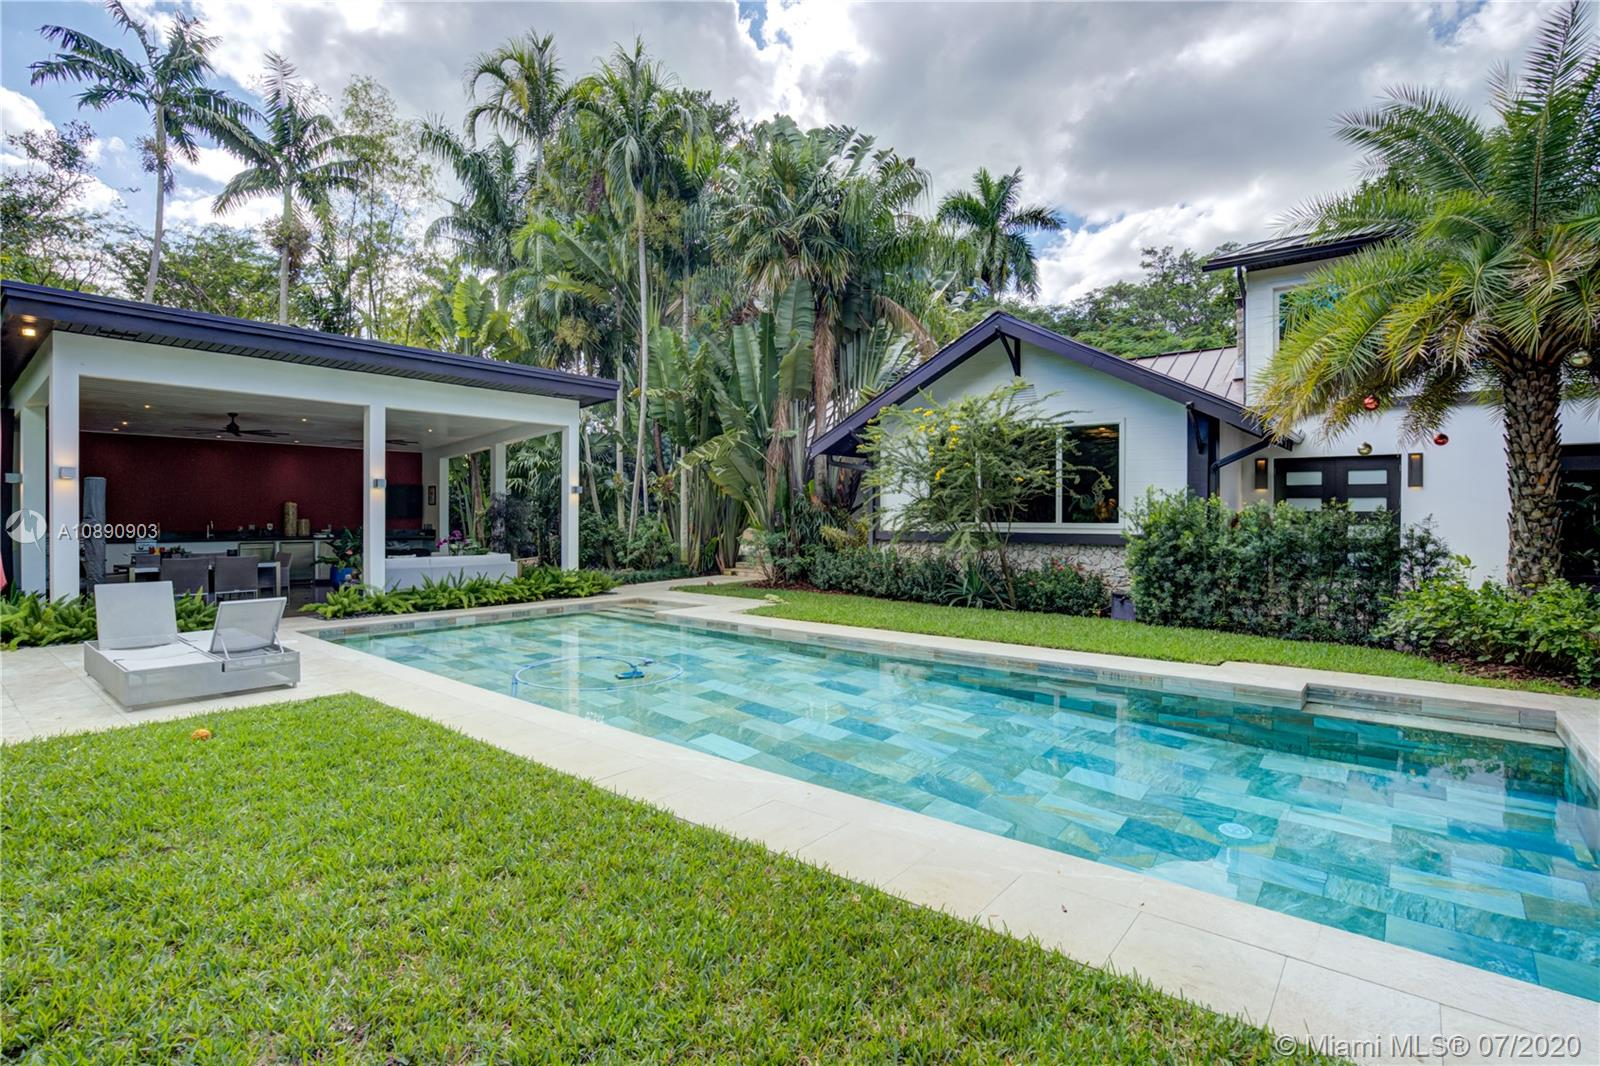 Details for 3700 Poinciana Ave, Miami, FL 33133